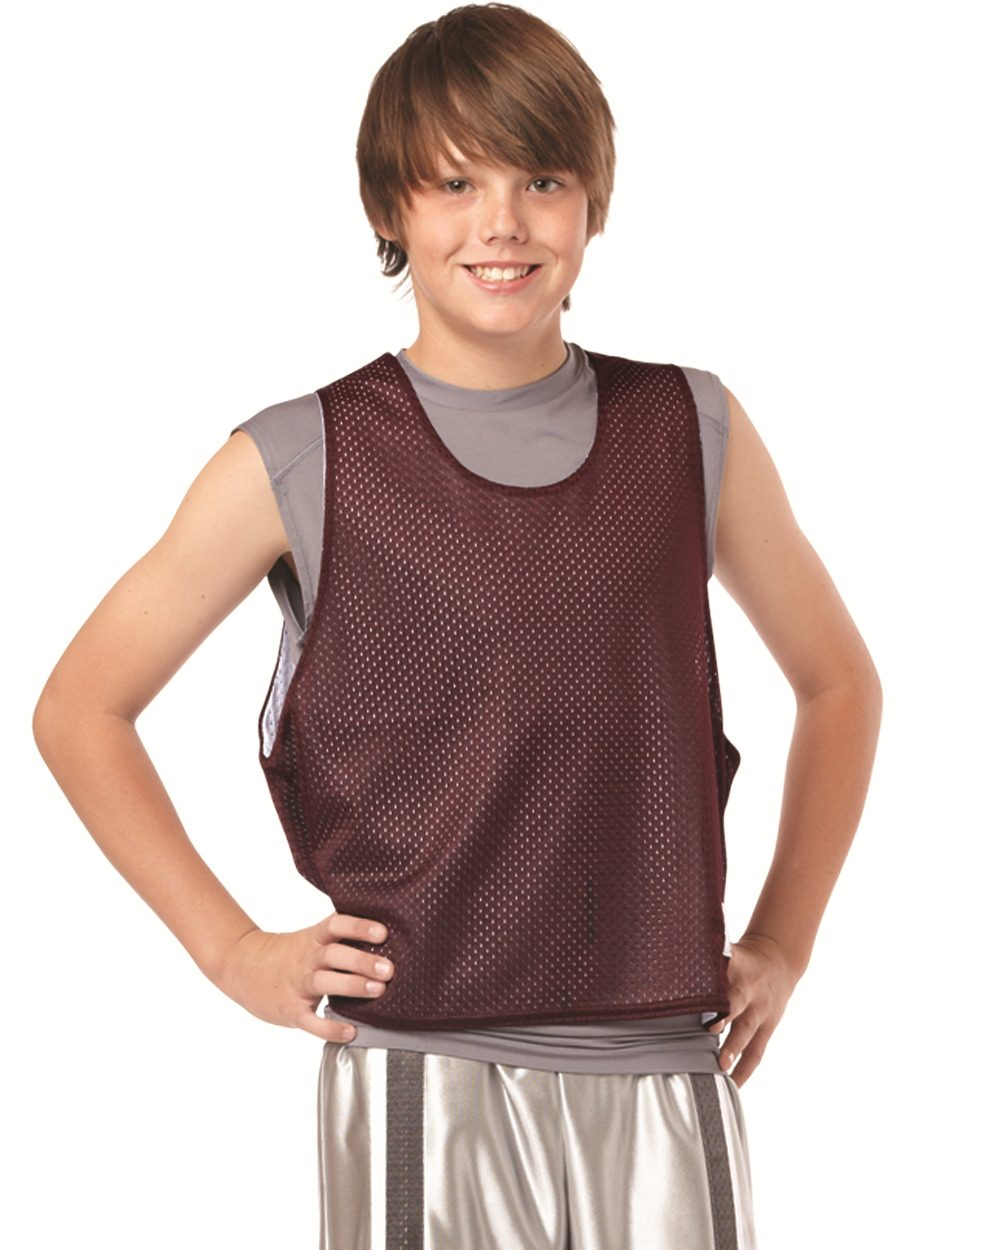 Badger 2560 - Youth Reversible Practice Jersey